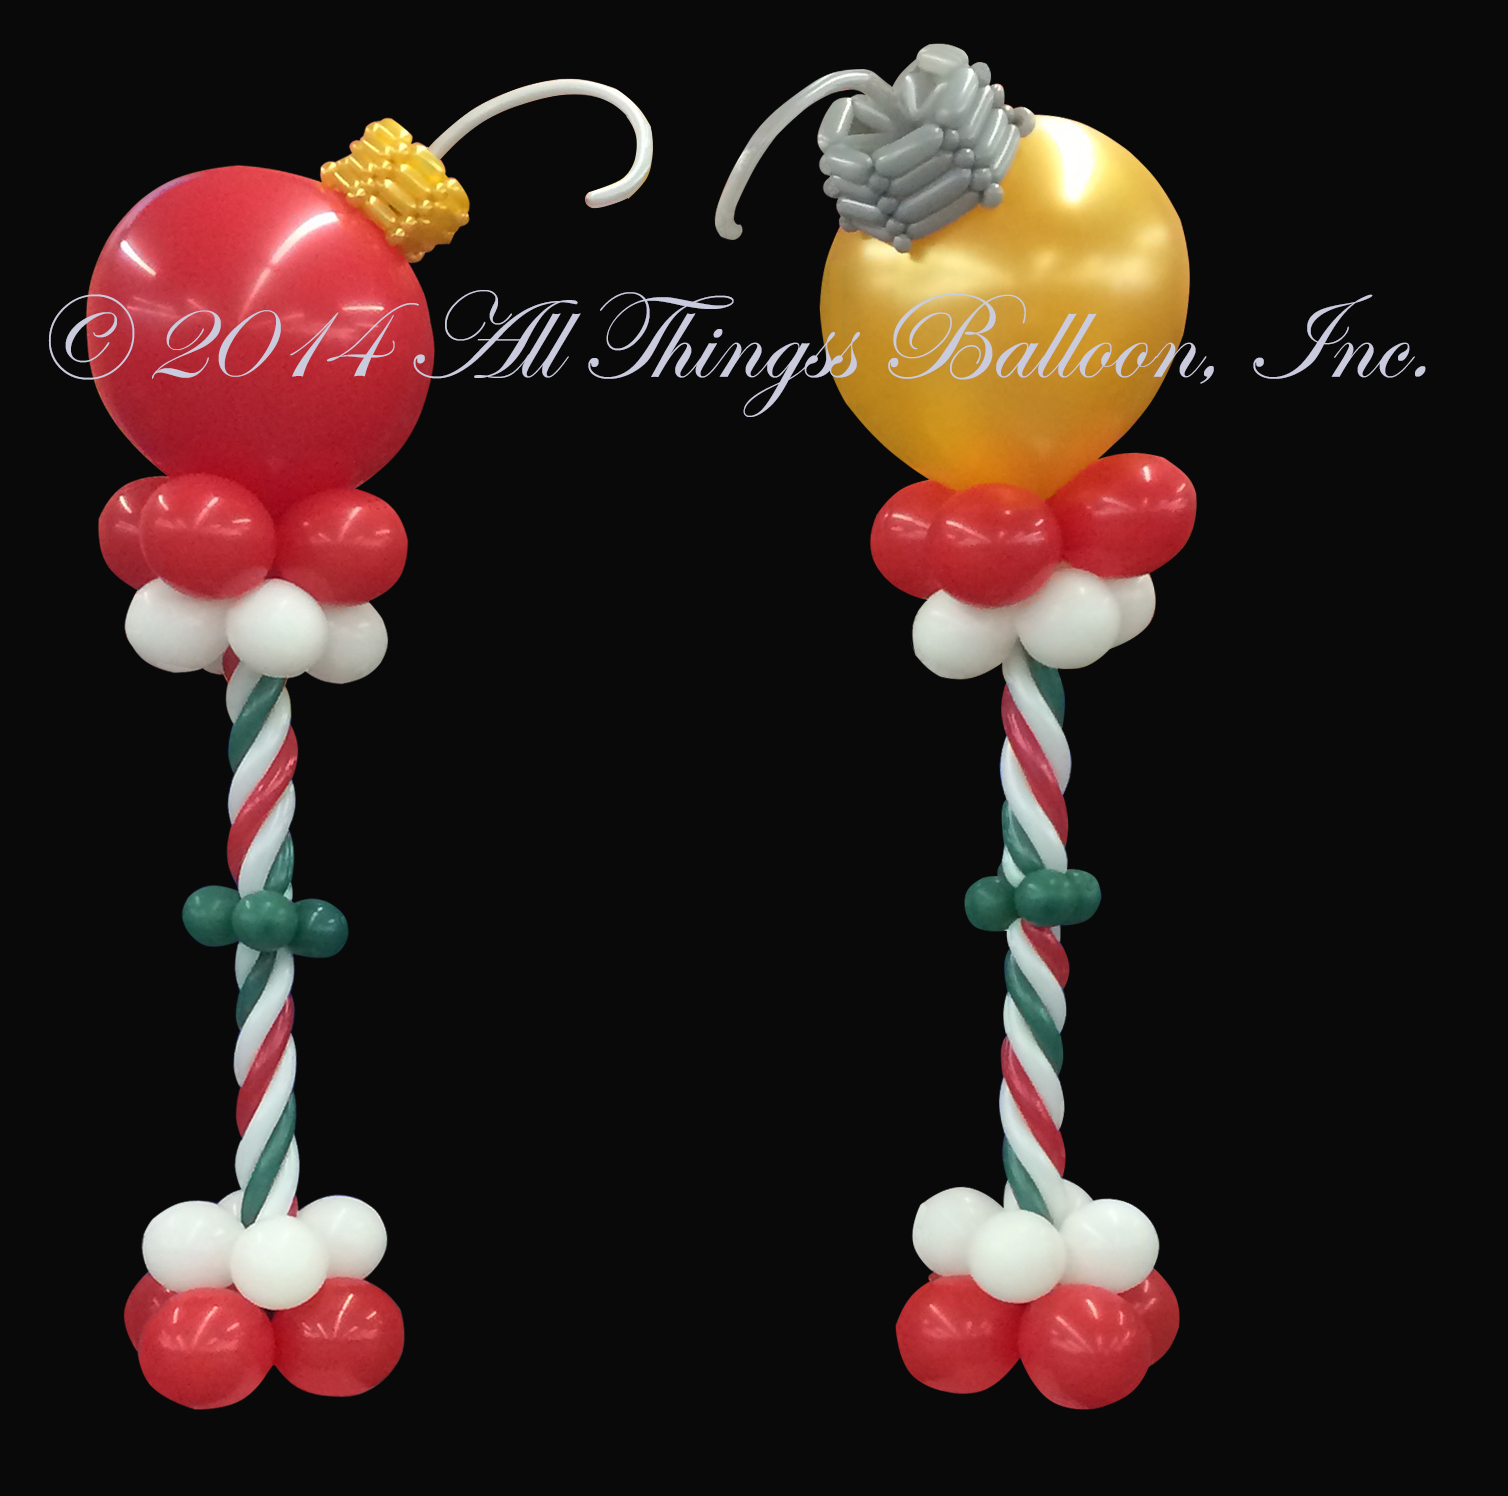 Holiday events balloon decor san antonio for Balloon column decoration